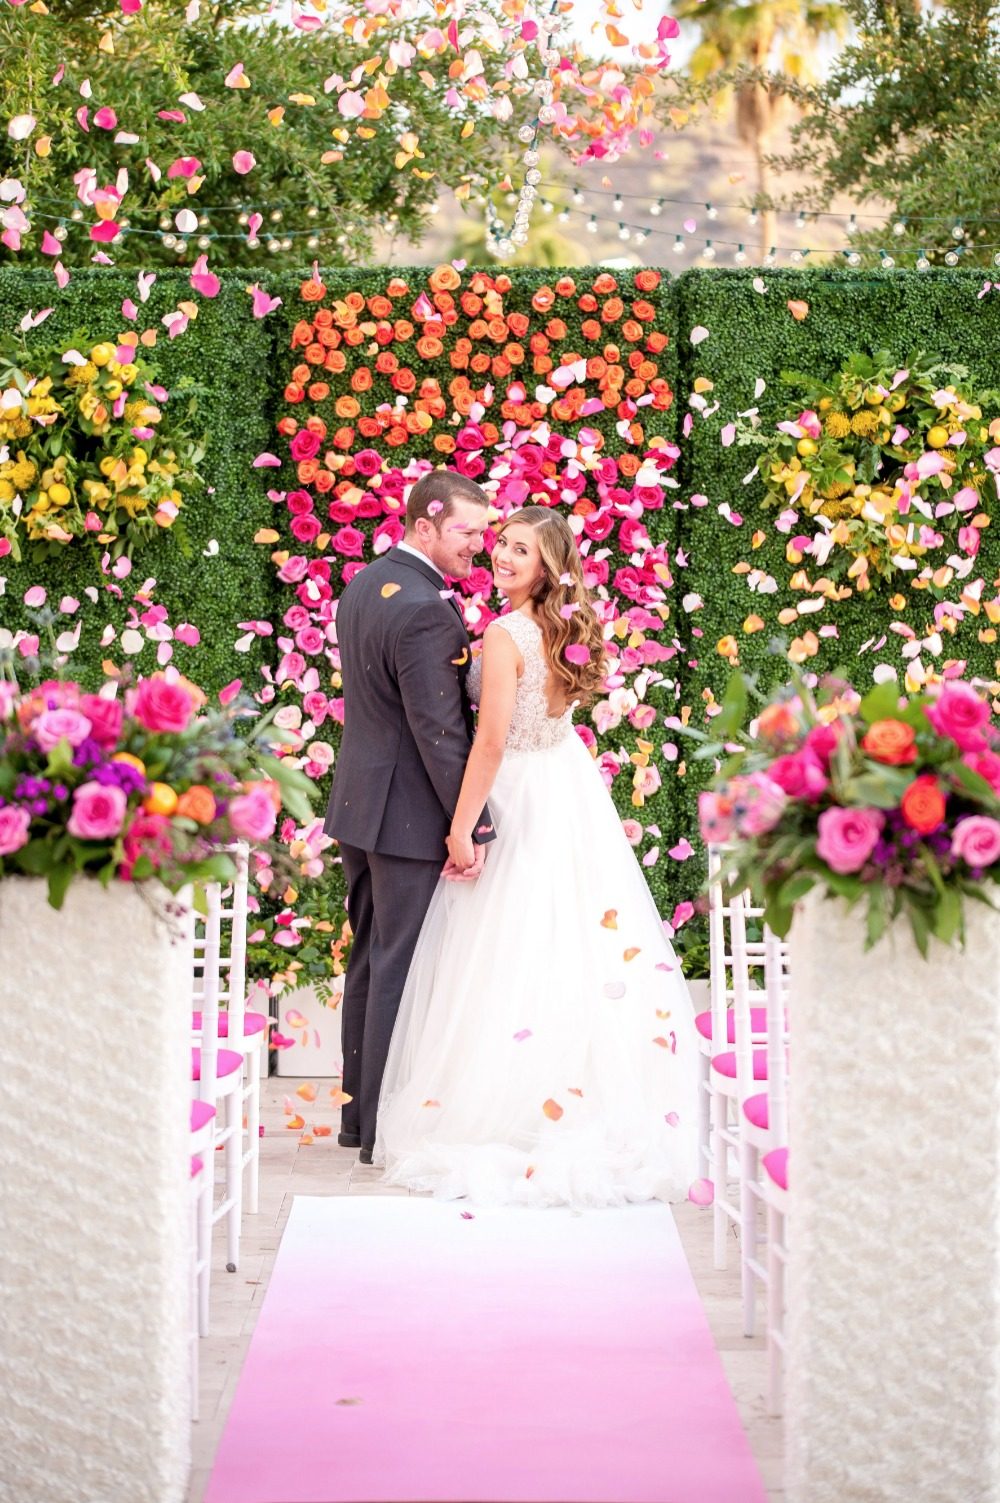 Gorgeous flower filled wedding